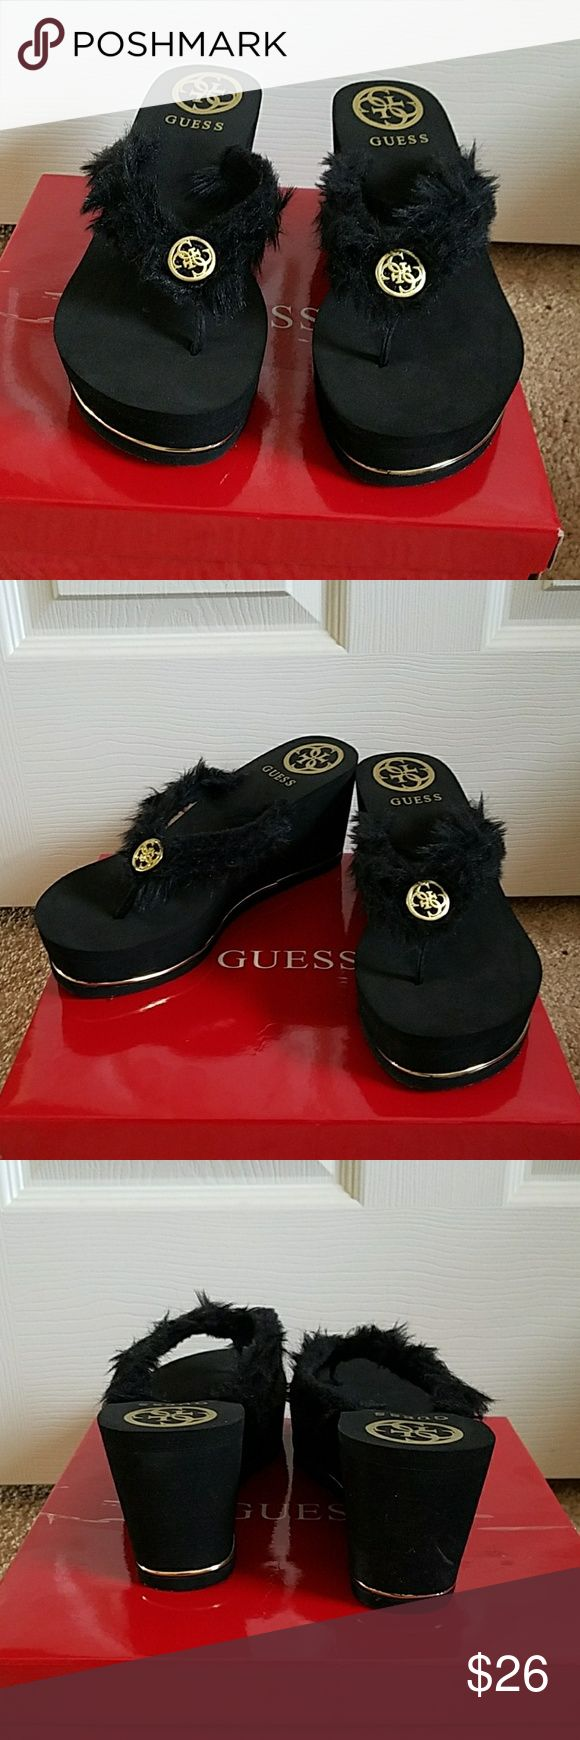 Guess Black/Gold fur wedge flip flopsNWB 8 5/9 Guess Black and Gold fur platform wedge flip flops sized as 9 but i own alot in this brand and these fit like 8.5 super cute! Guess Shoes Sandals